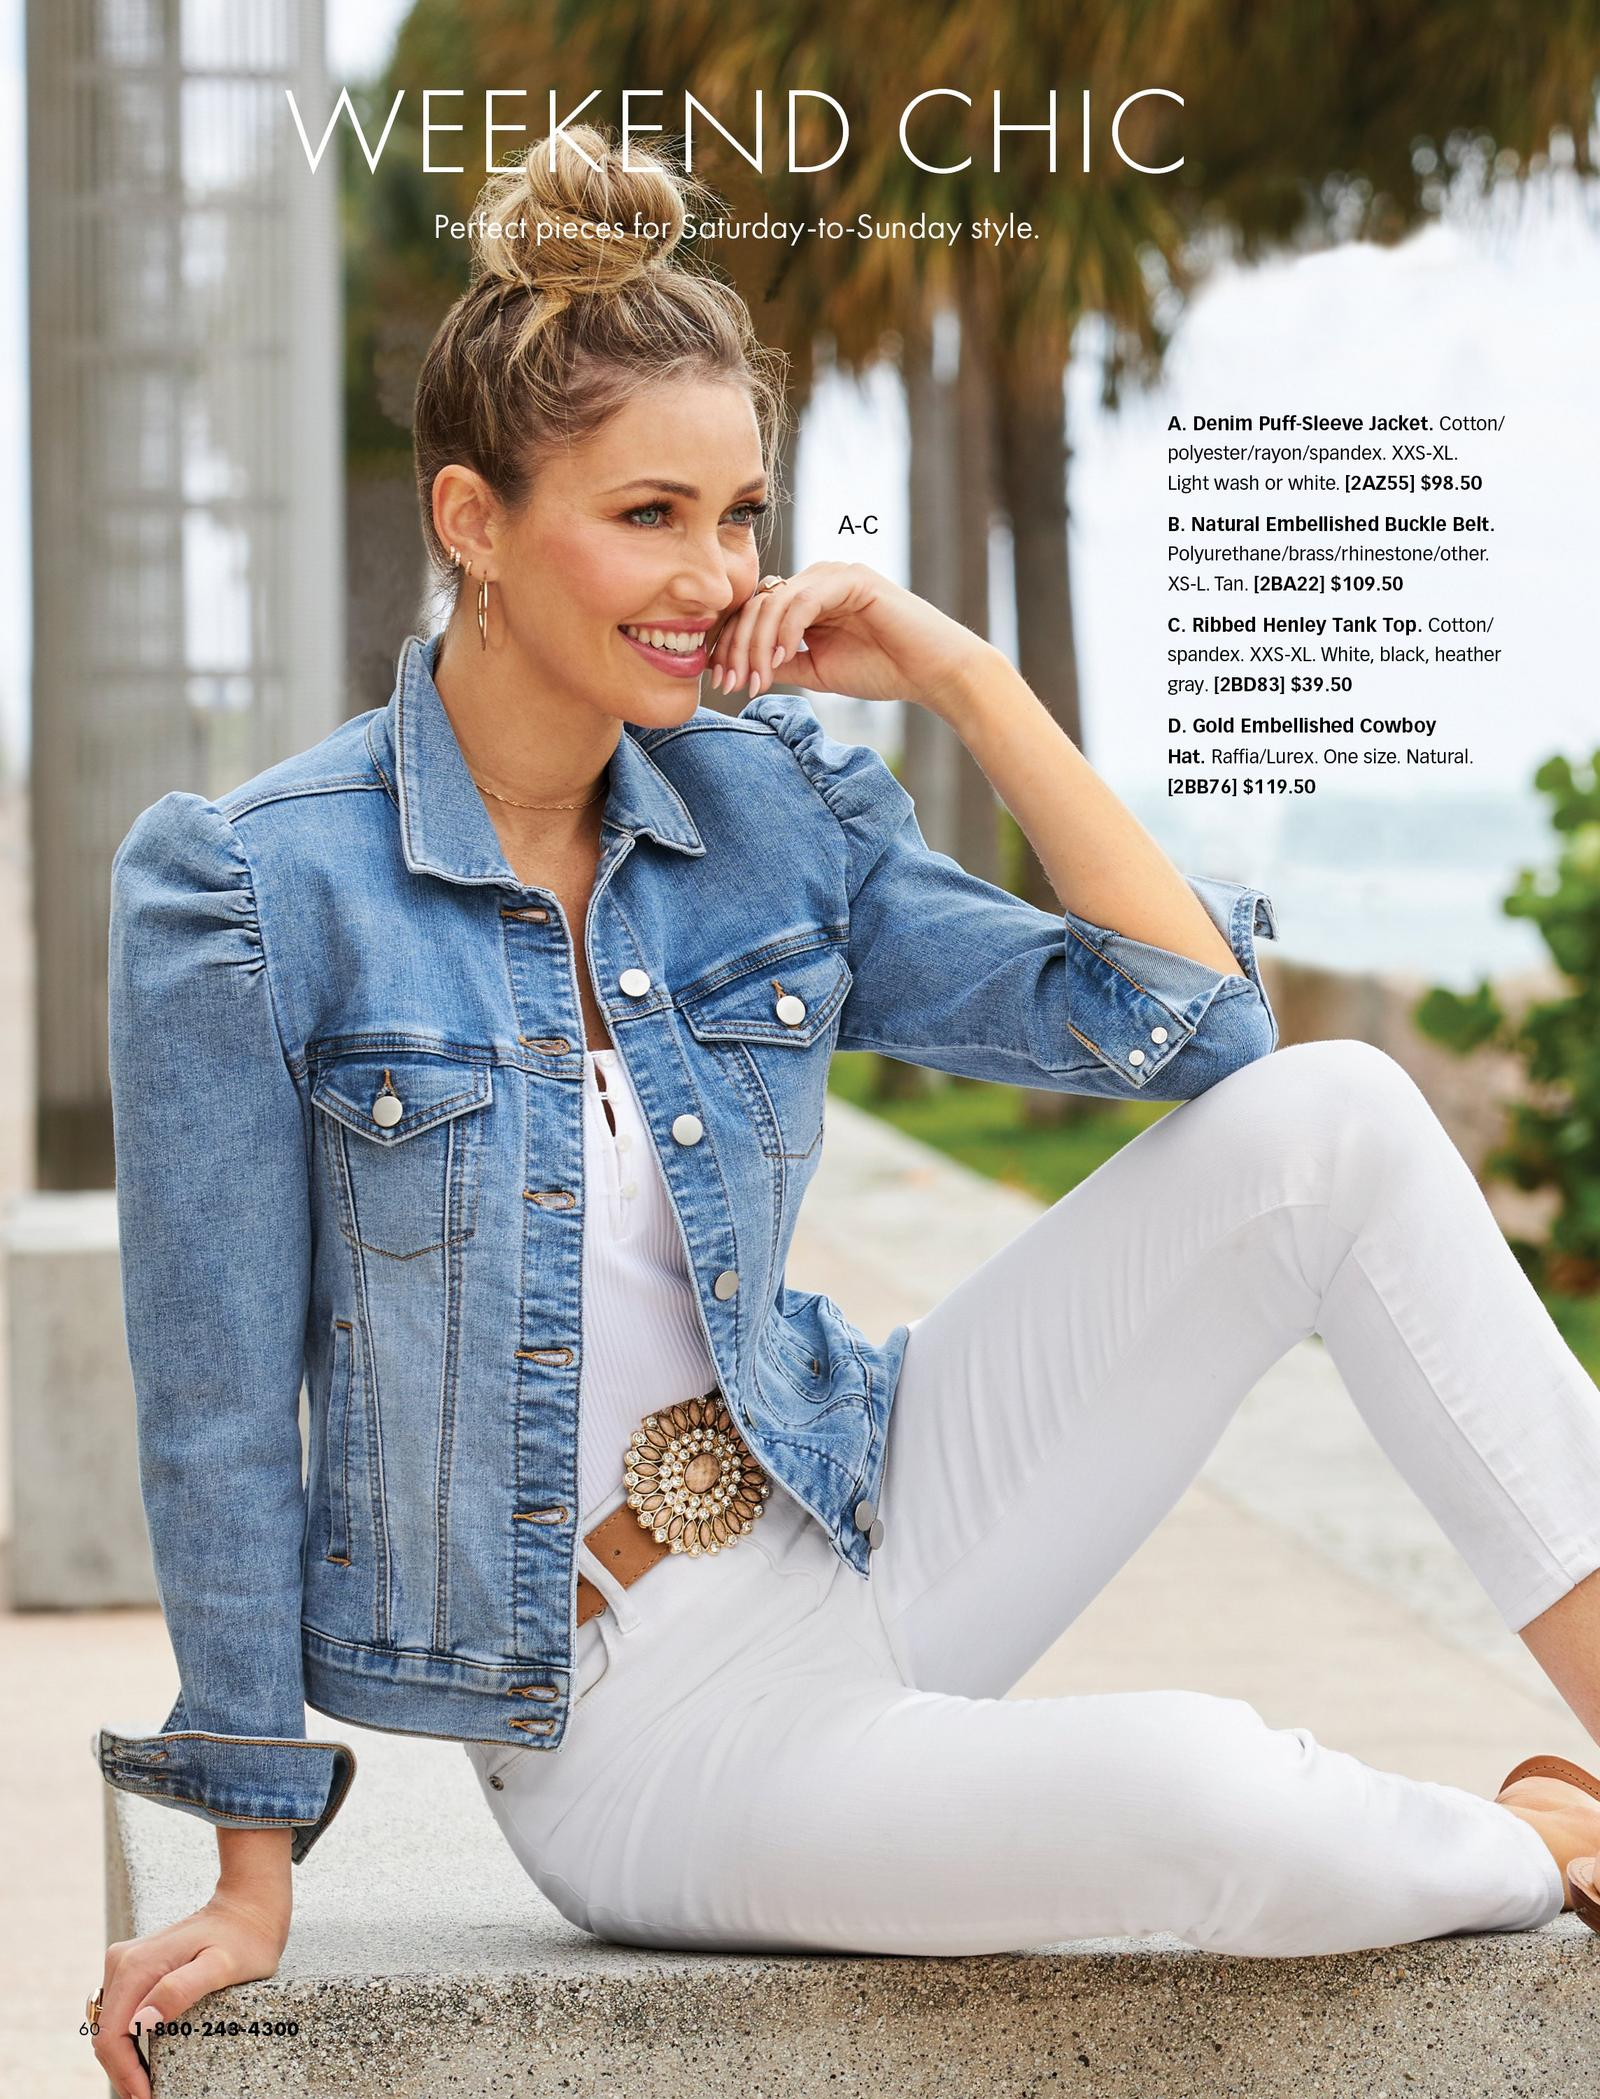 model wearing a puff-sleeve denim jacket, white tank top, brown jeweled belt, and white jeans.